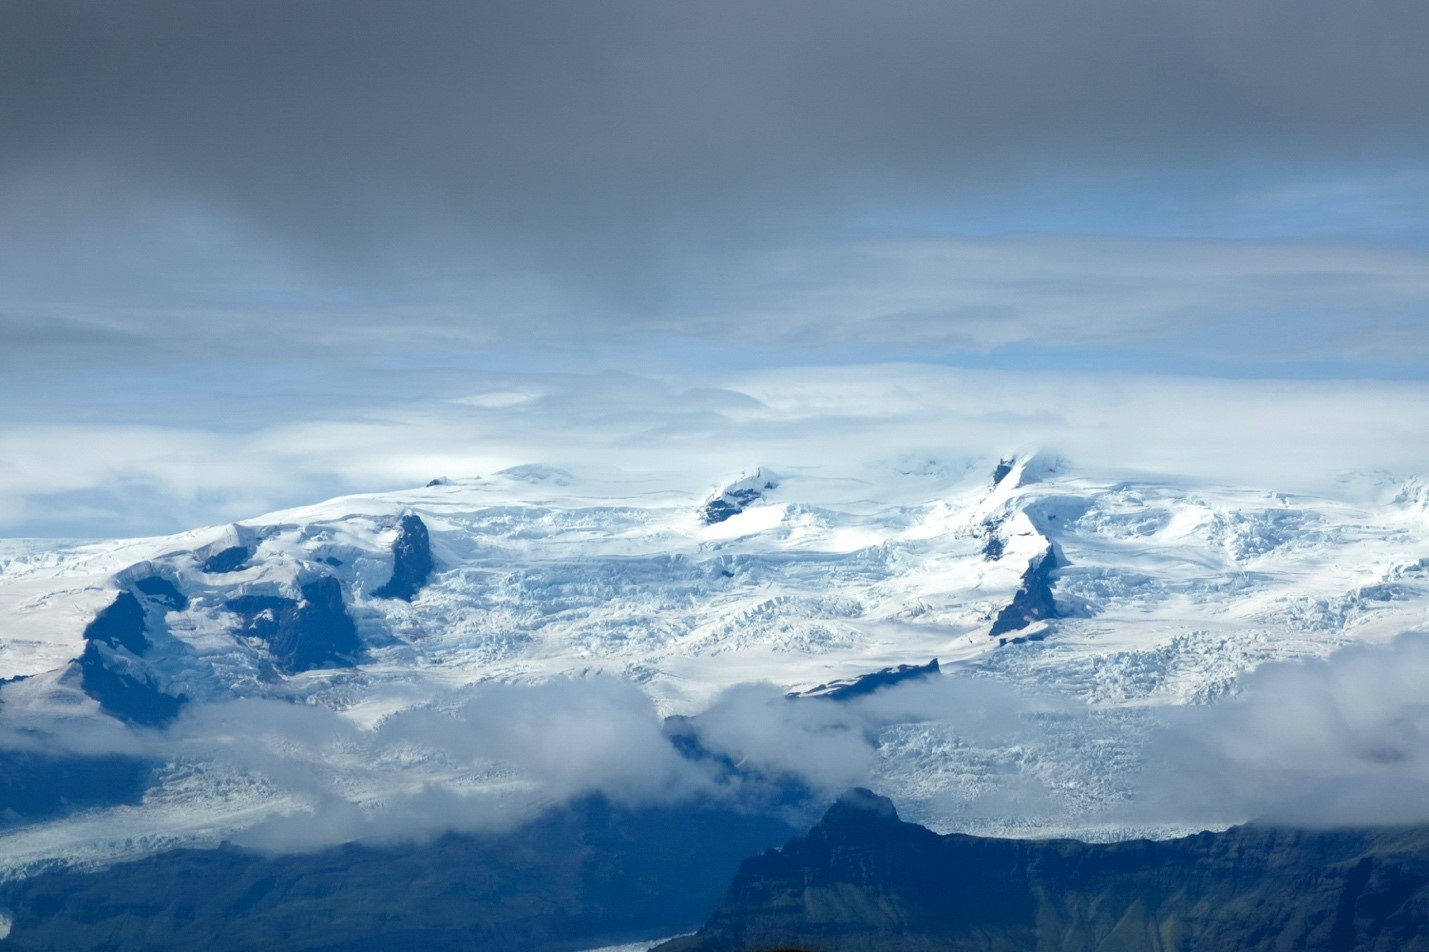 Glaciers on Iceland: History of Glaciation in Iceland